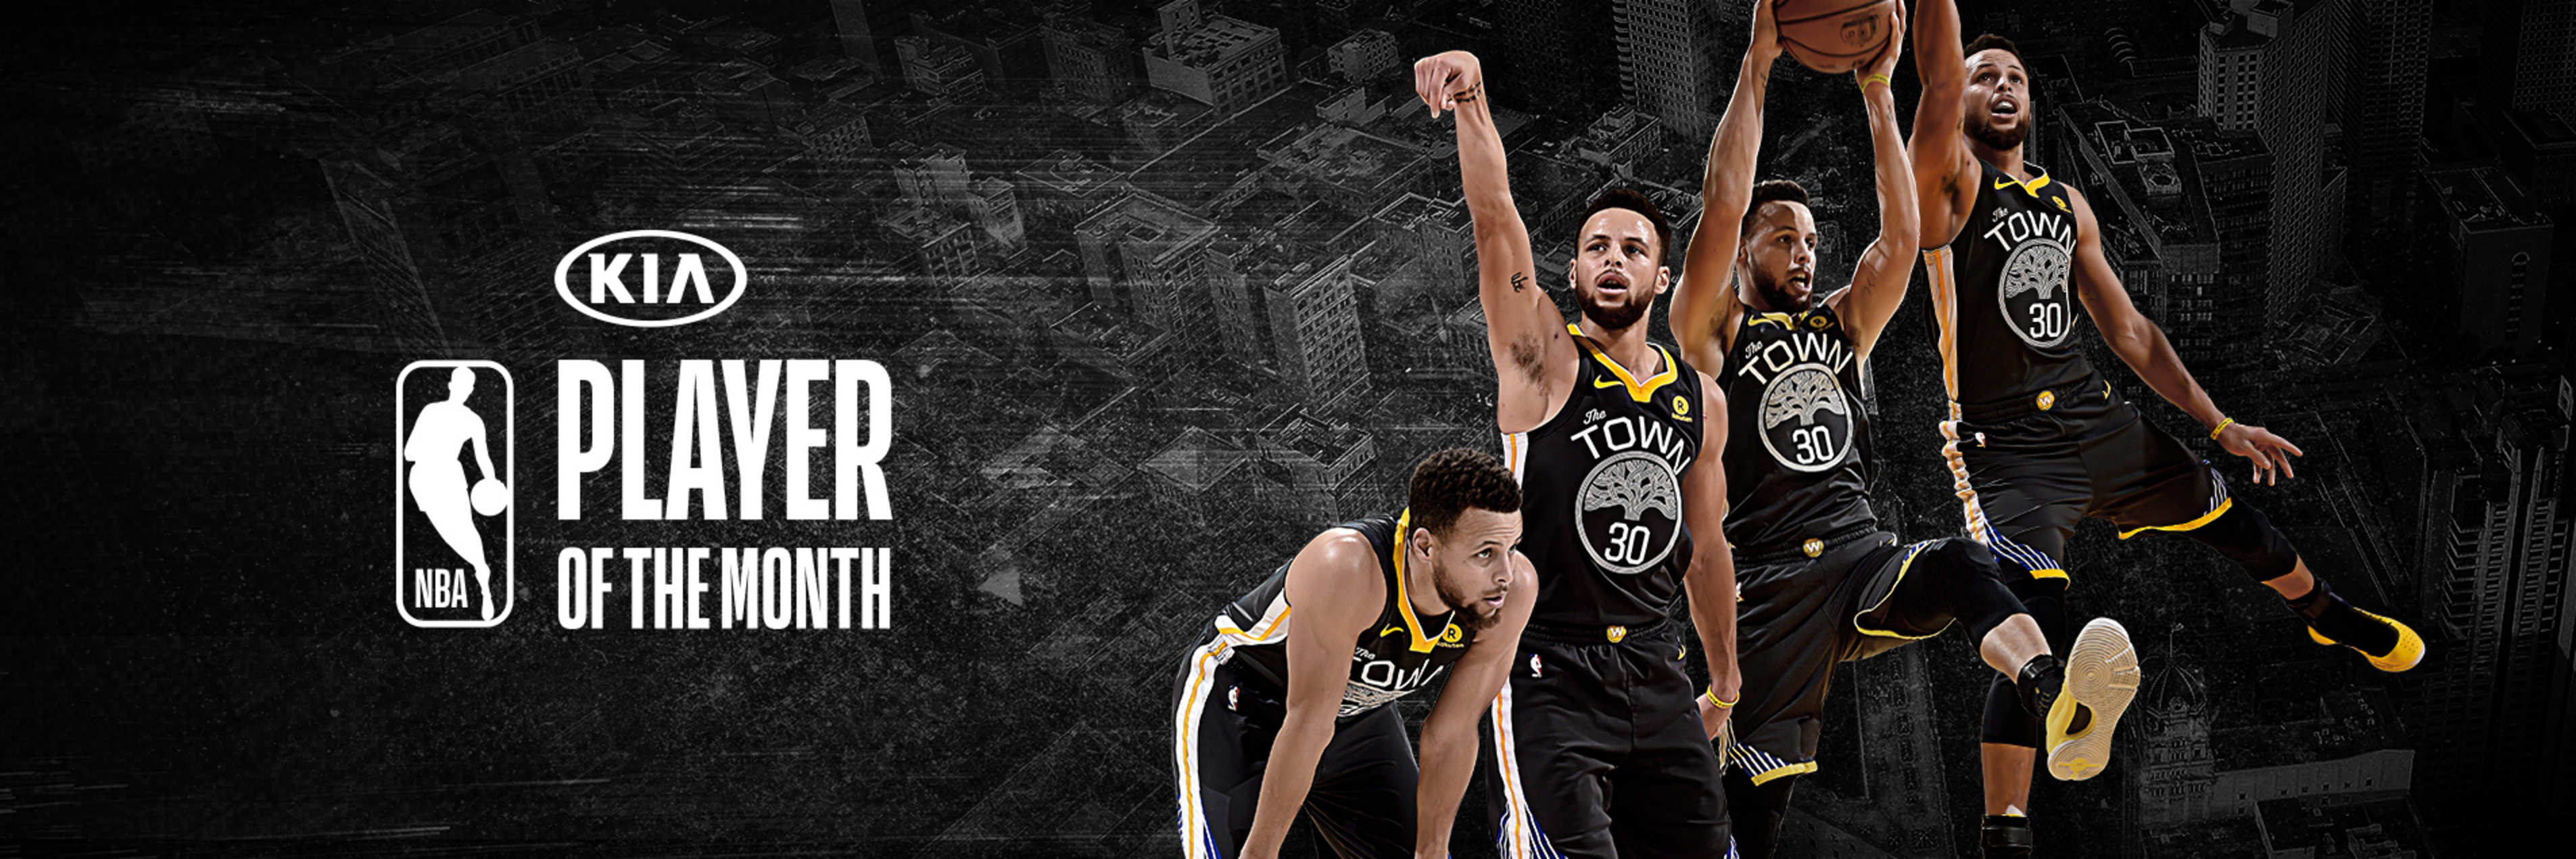 Stephen Curry Named Kia Western Conference Player of the Month